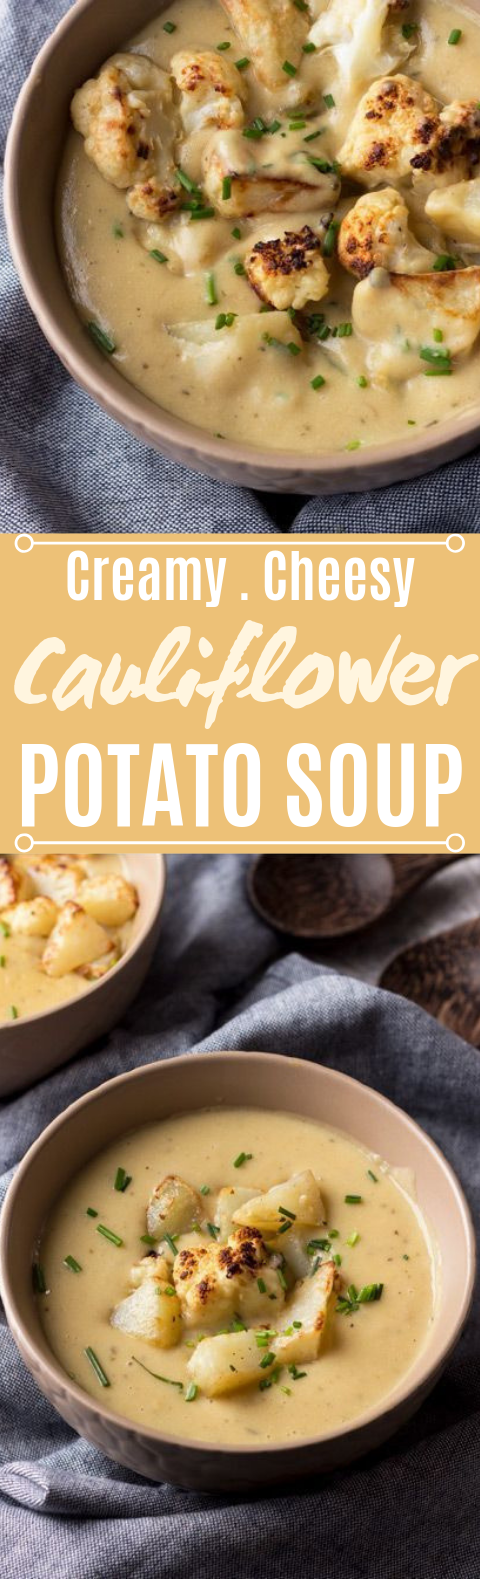 Cheesy Vegan Cauliflower Potato Soup #vegetarian #soup